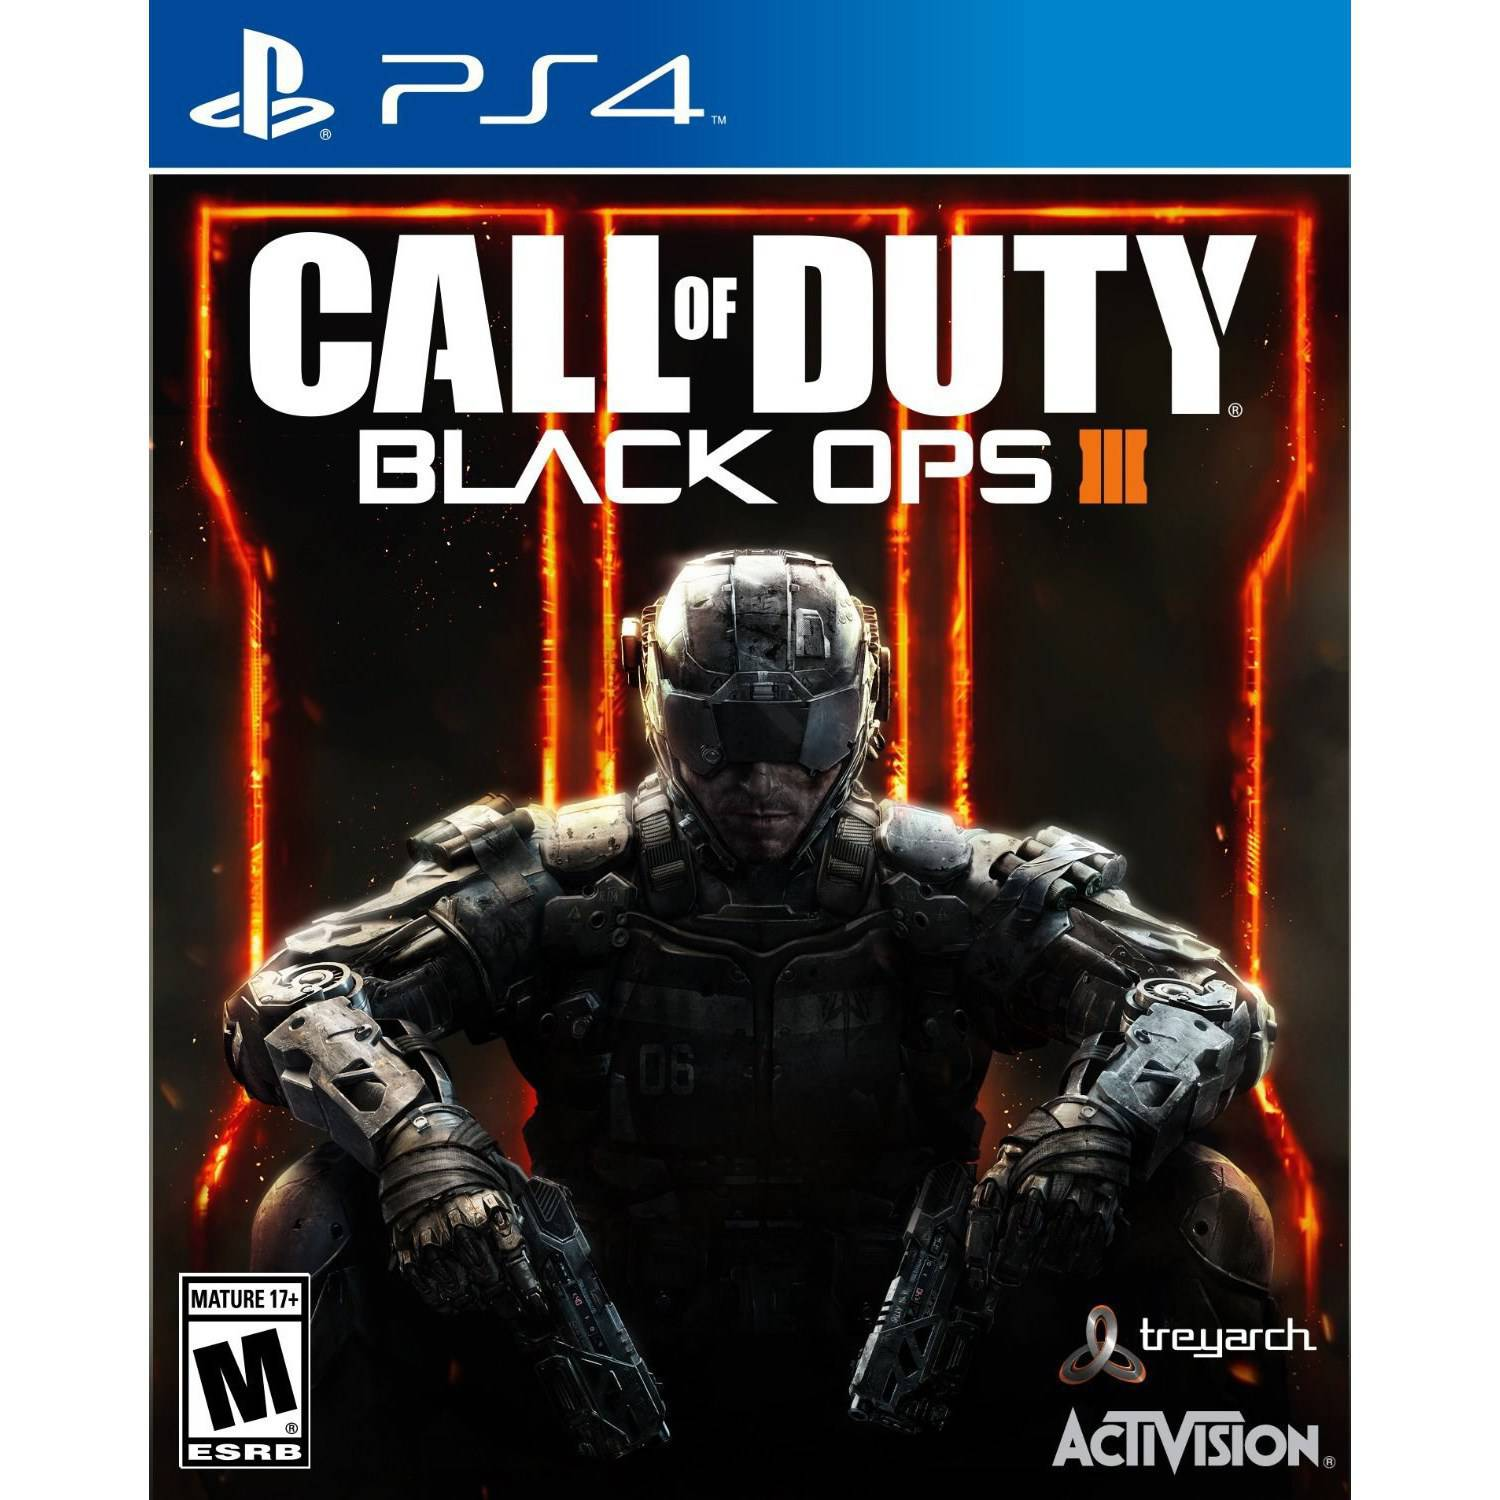 Call Of Duty Black Ops III (PS4)